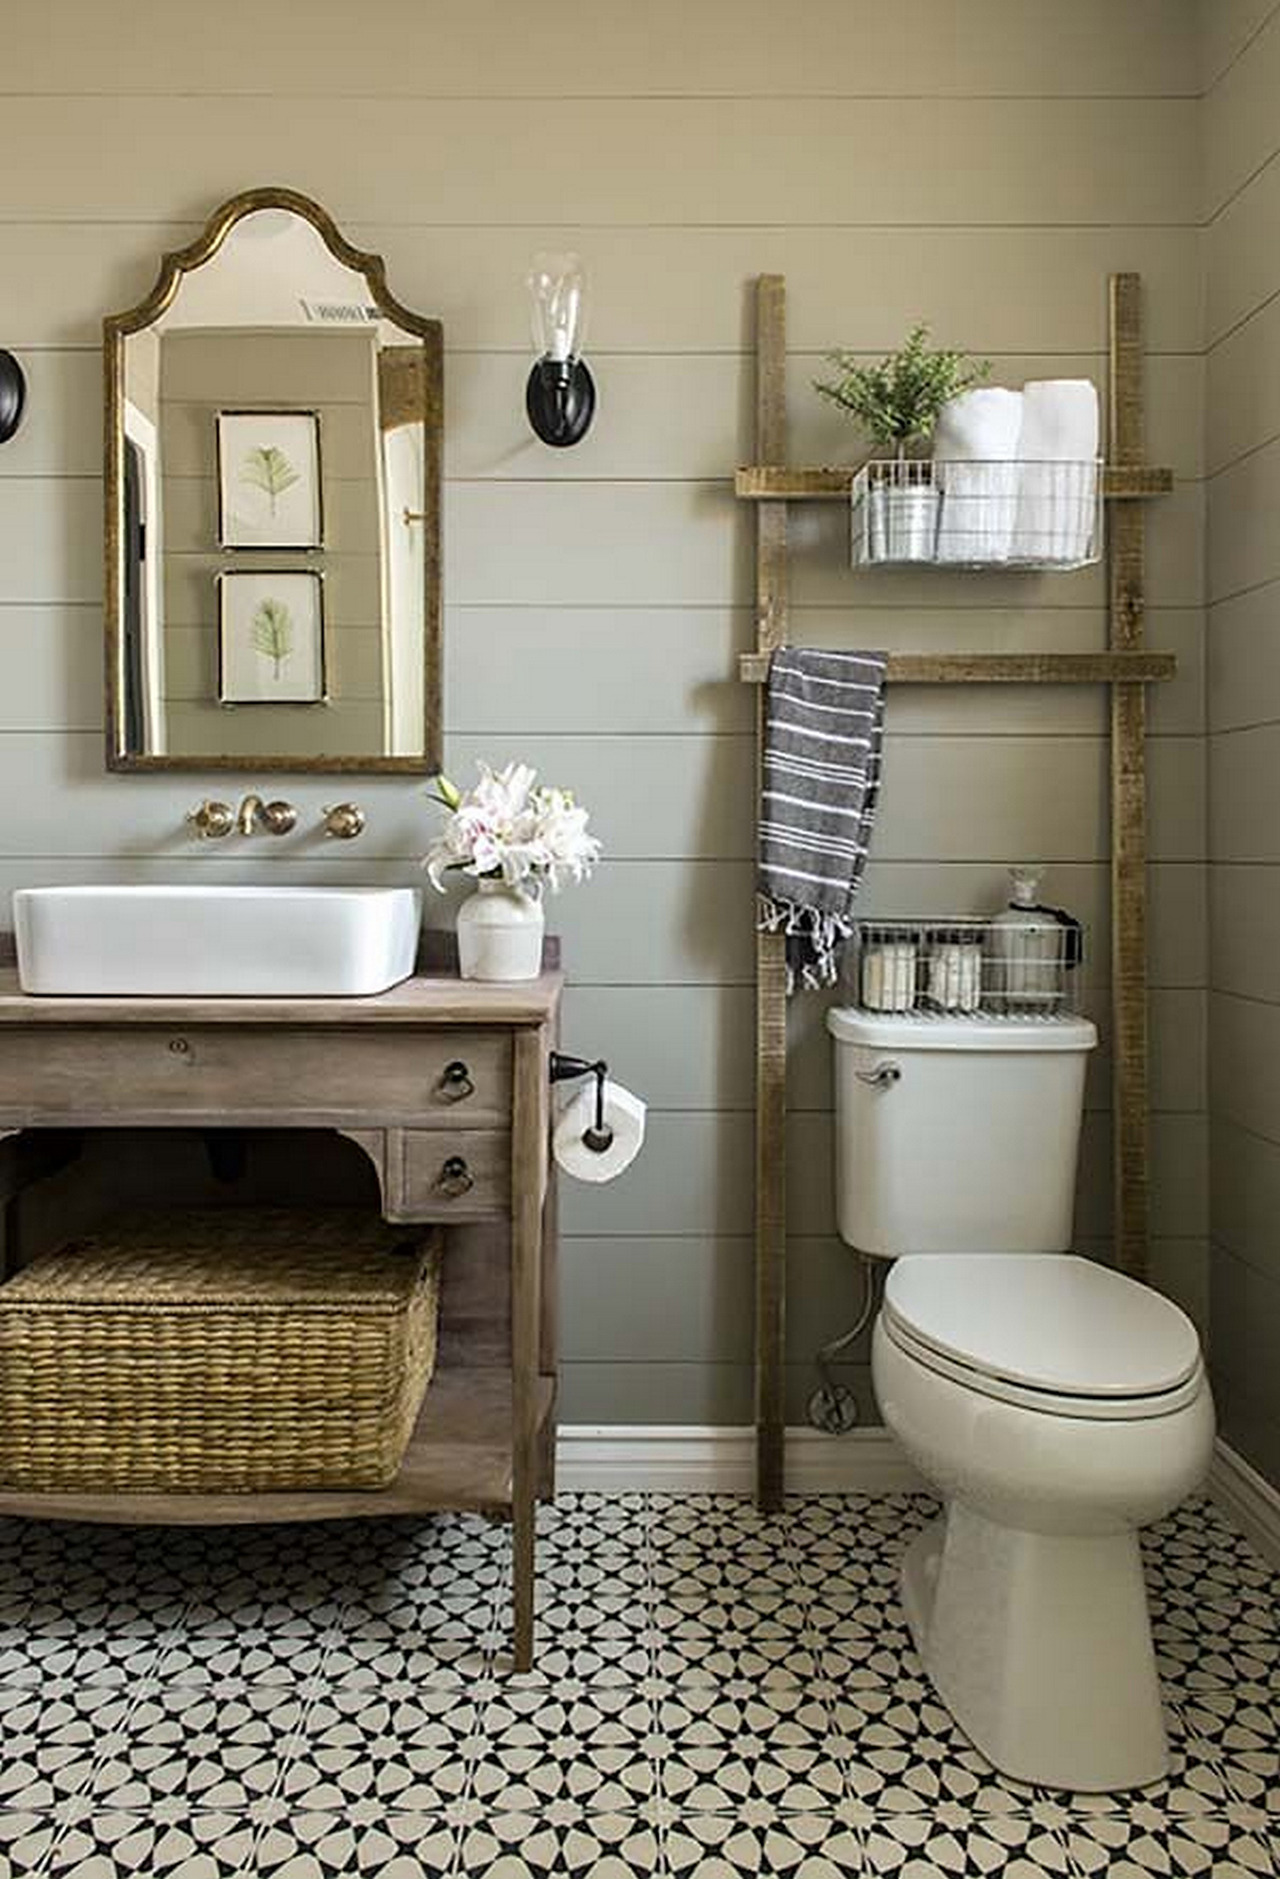 Bathroom Decorating Idea Lovely 25 Best Bathroom Decor Ideas and Designs that are Trendy In 2020